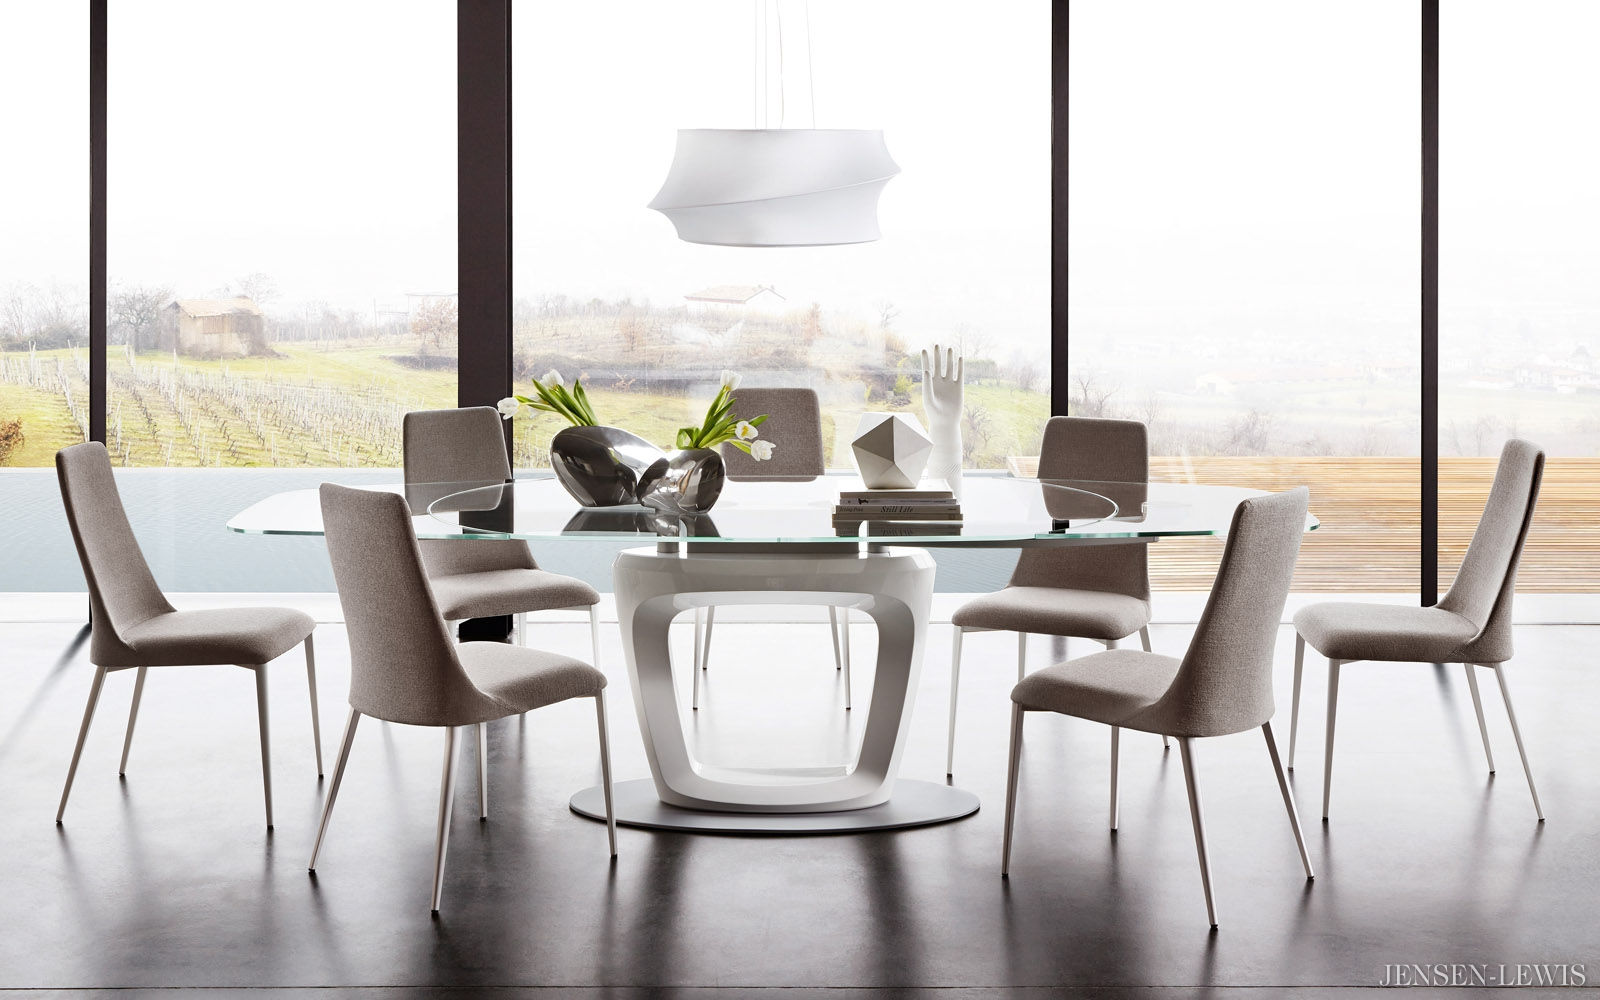 holidayworthy dining furniture by calligaris  hip furniture - calligarisfurnitureorbitalextensiondiningtable